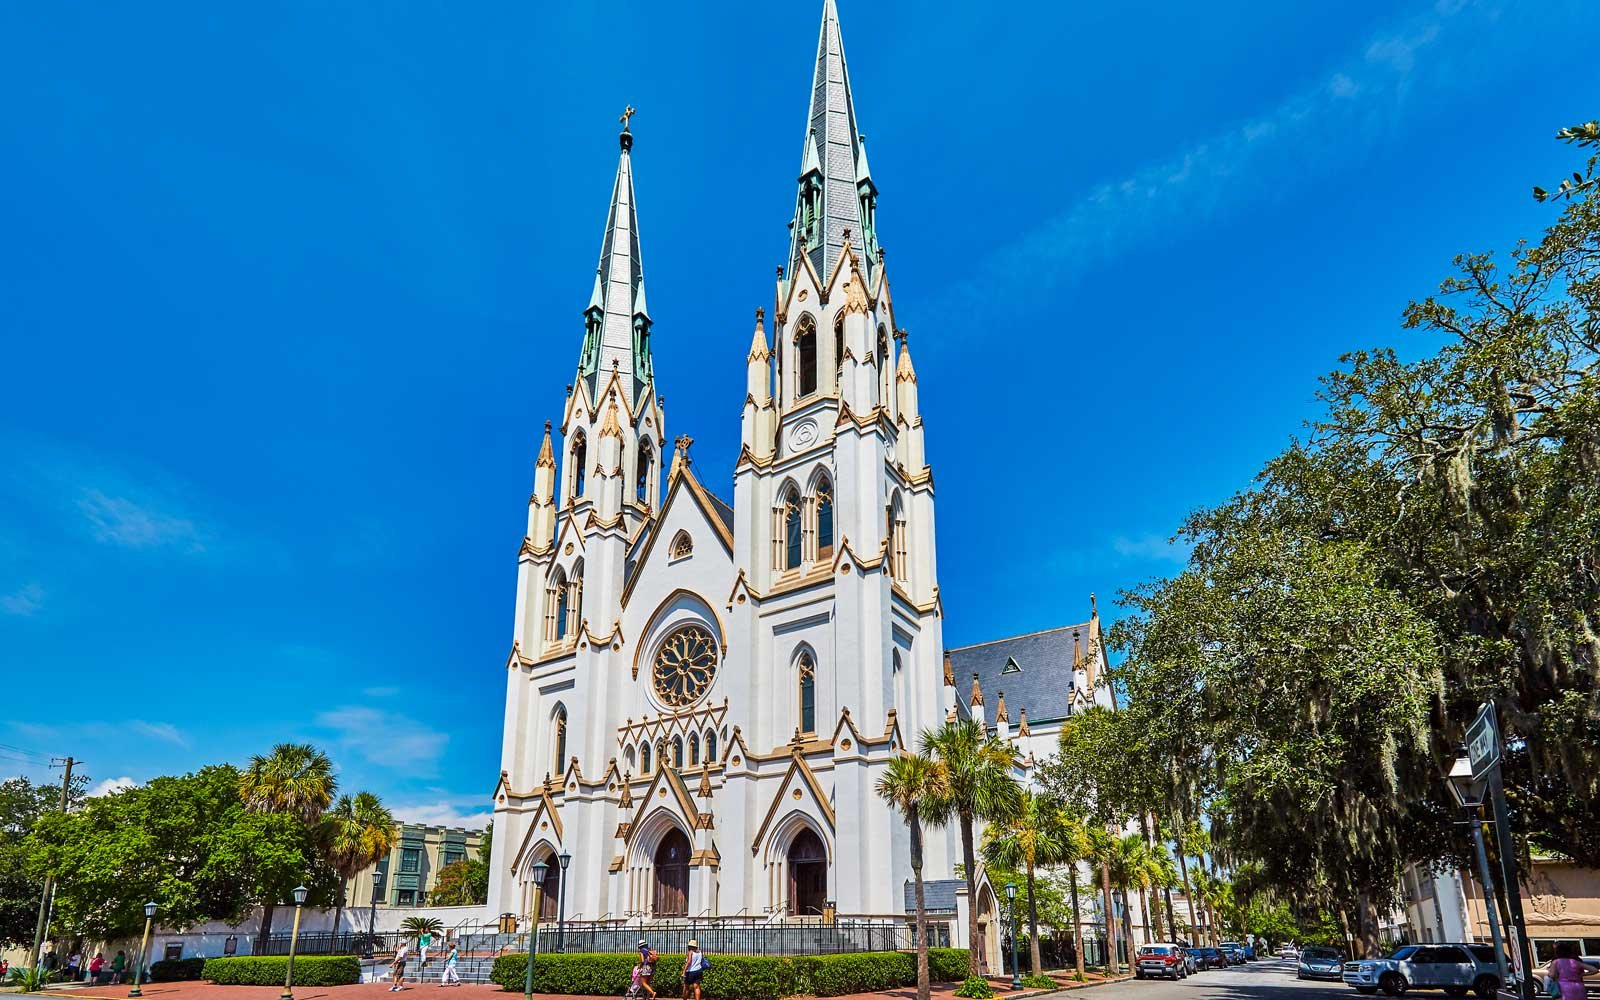 Cathedral of St Johns the Baptist in historic downtown Savannah, Georgia,USA